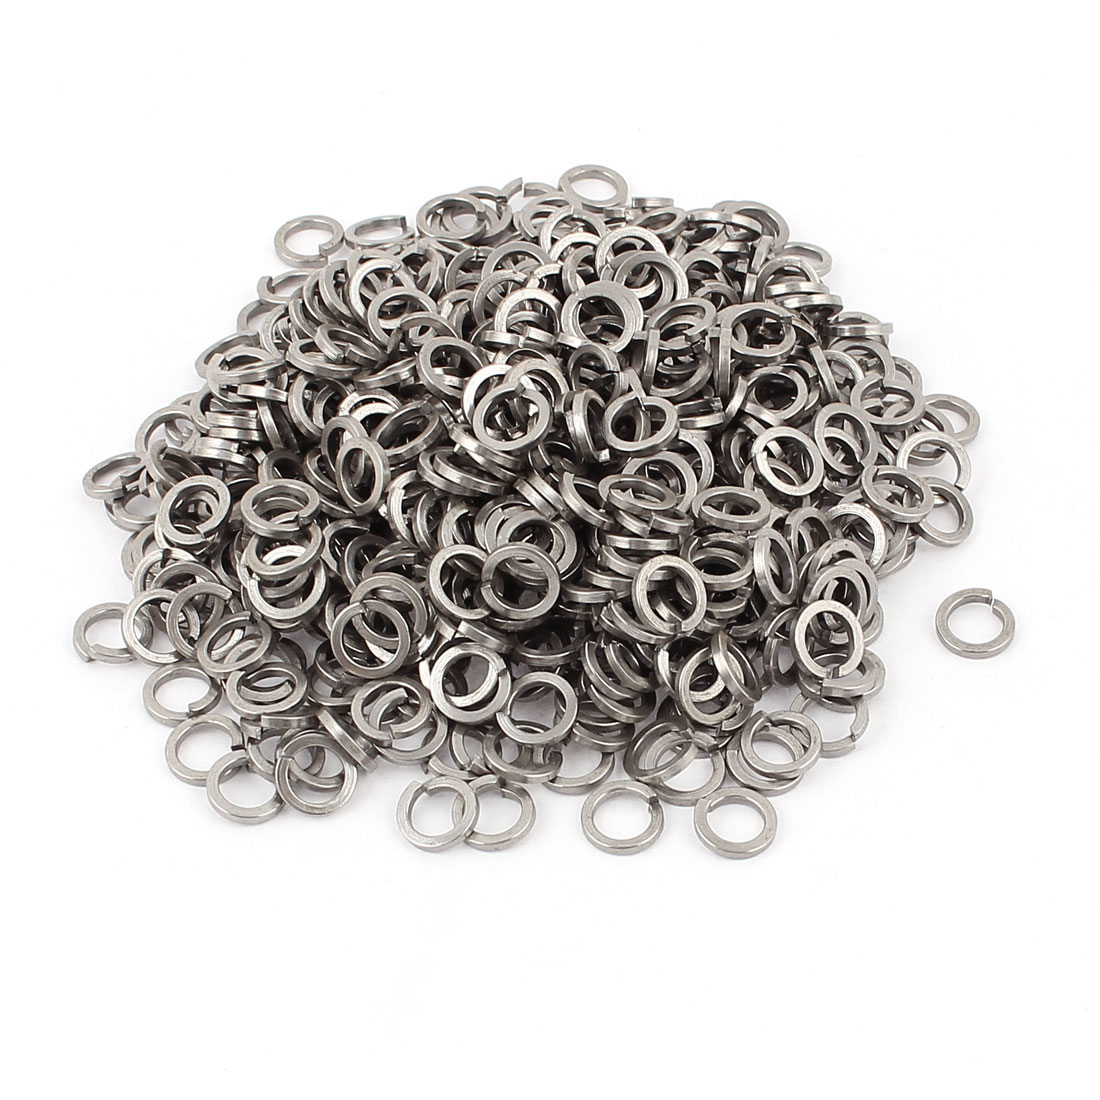 500pcs 304 Stainless Steel M6 Spring Lock Washer Gasket Square Section